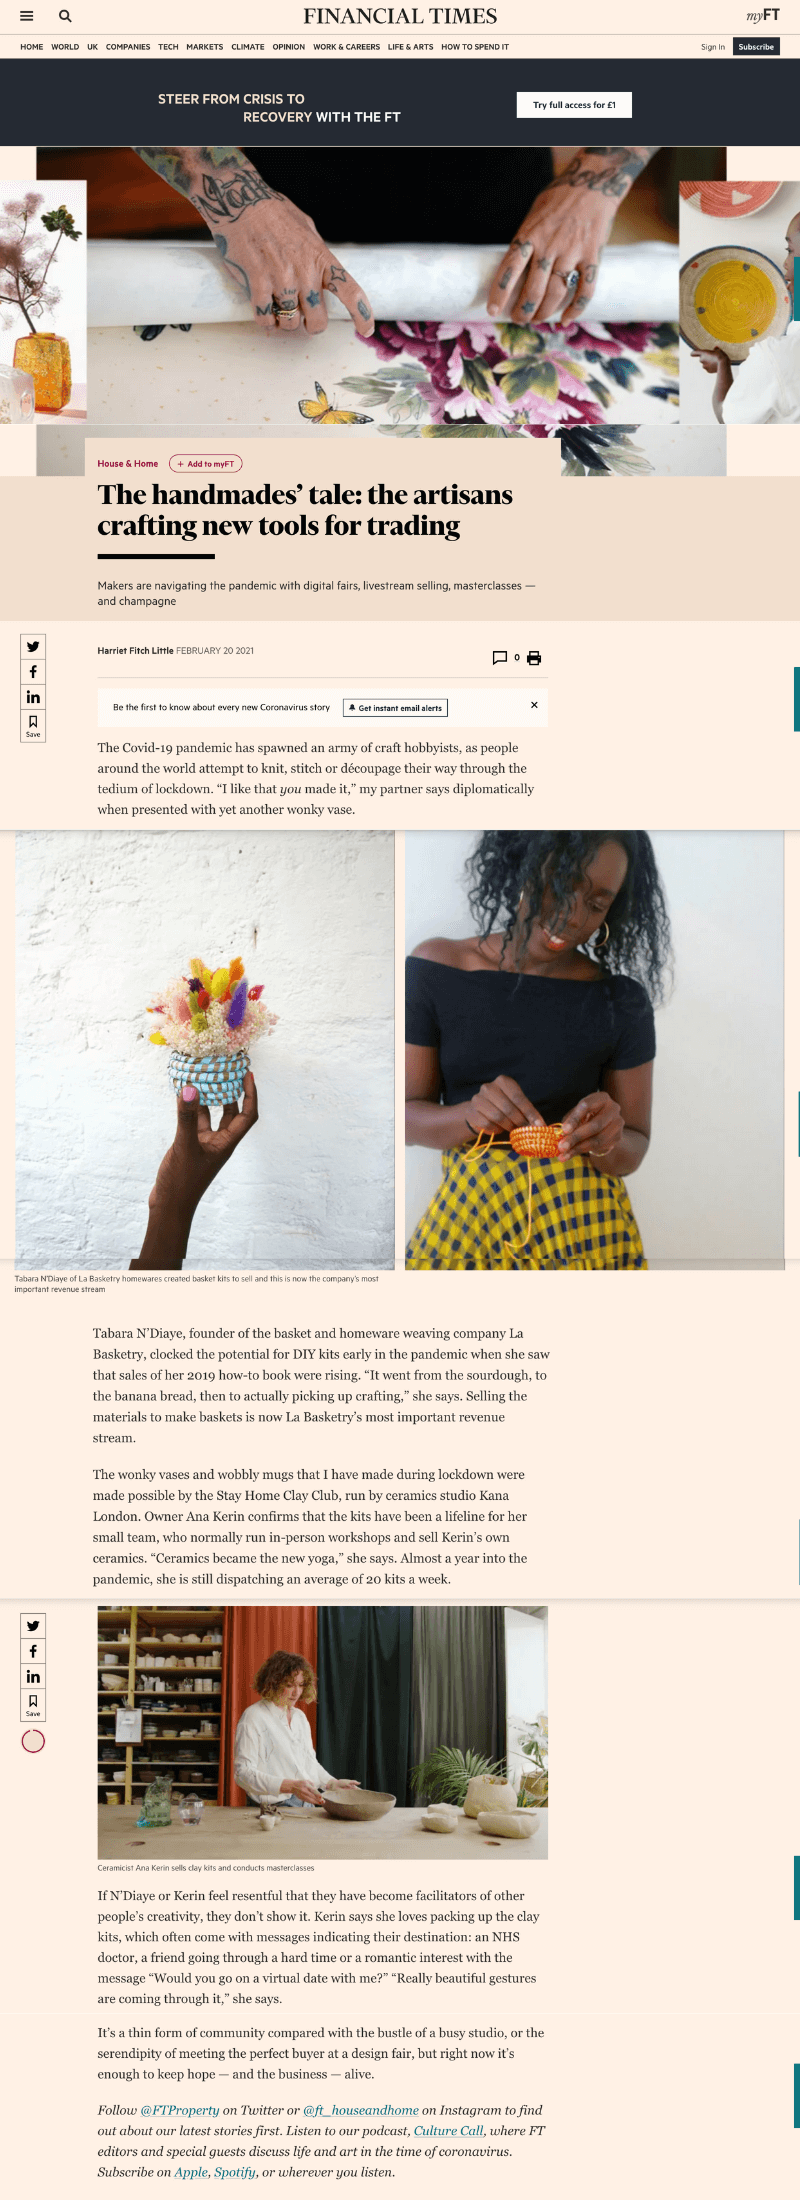 La Basketry for The Financial Times featured in Feb 2021 talking to founder Tabara D'Niaye about launching home diy kits for crafters